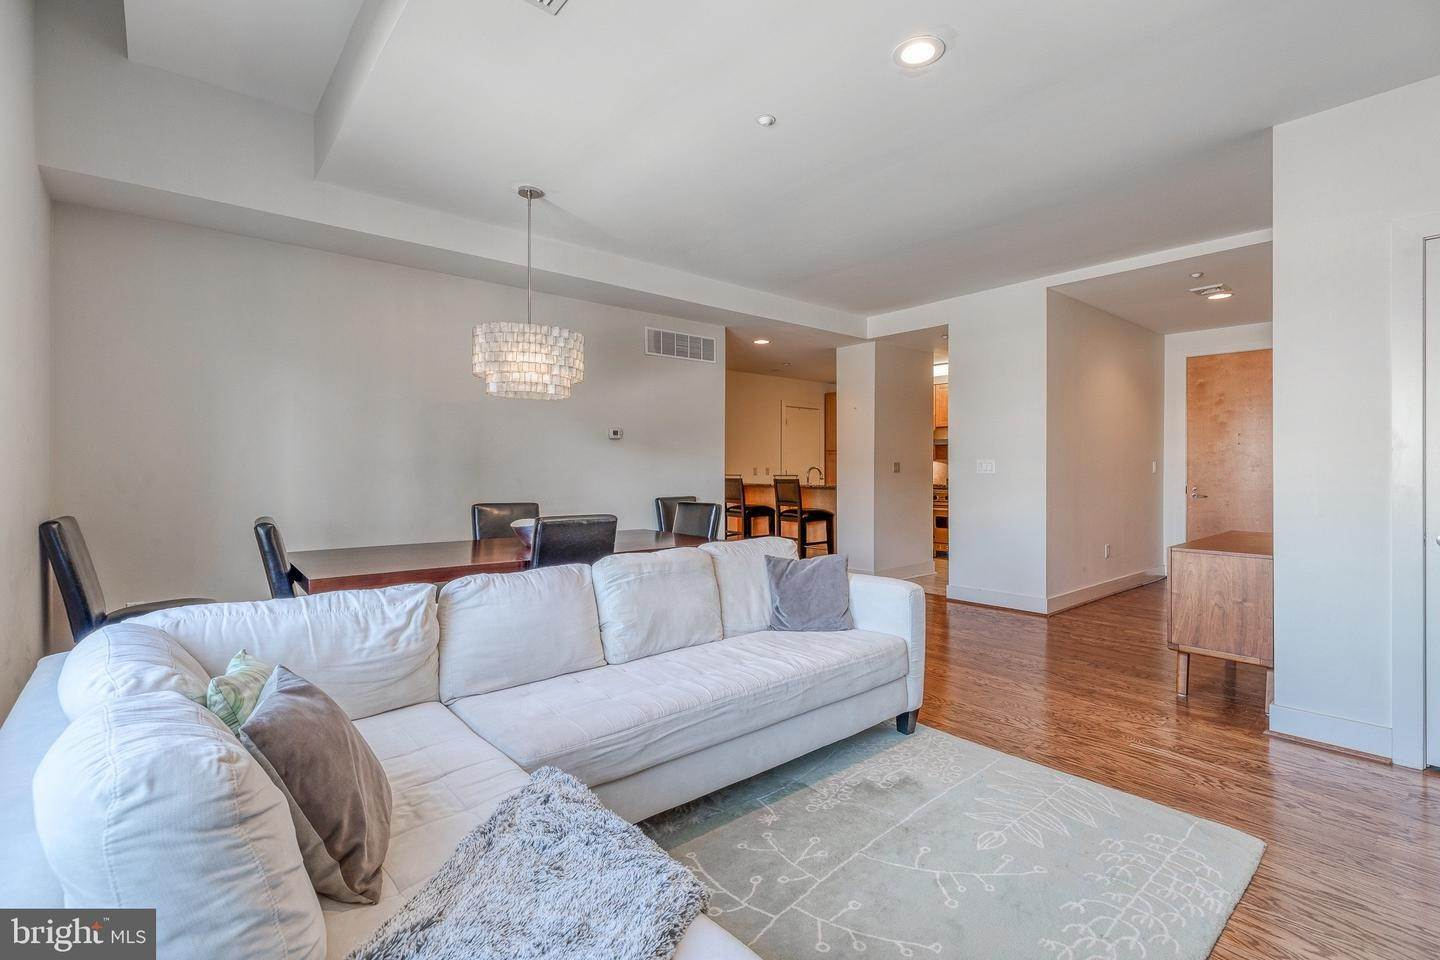 10. Apartments for Sale at 23 S 23RD ST #5B Philadelphia, Pennsylvania 19103 United States